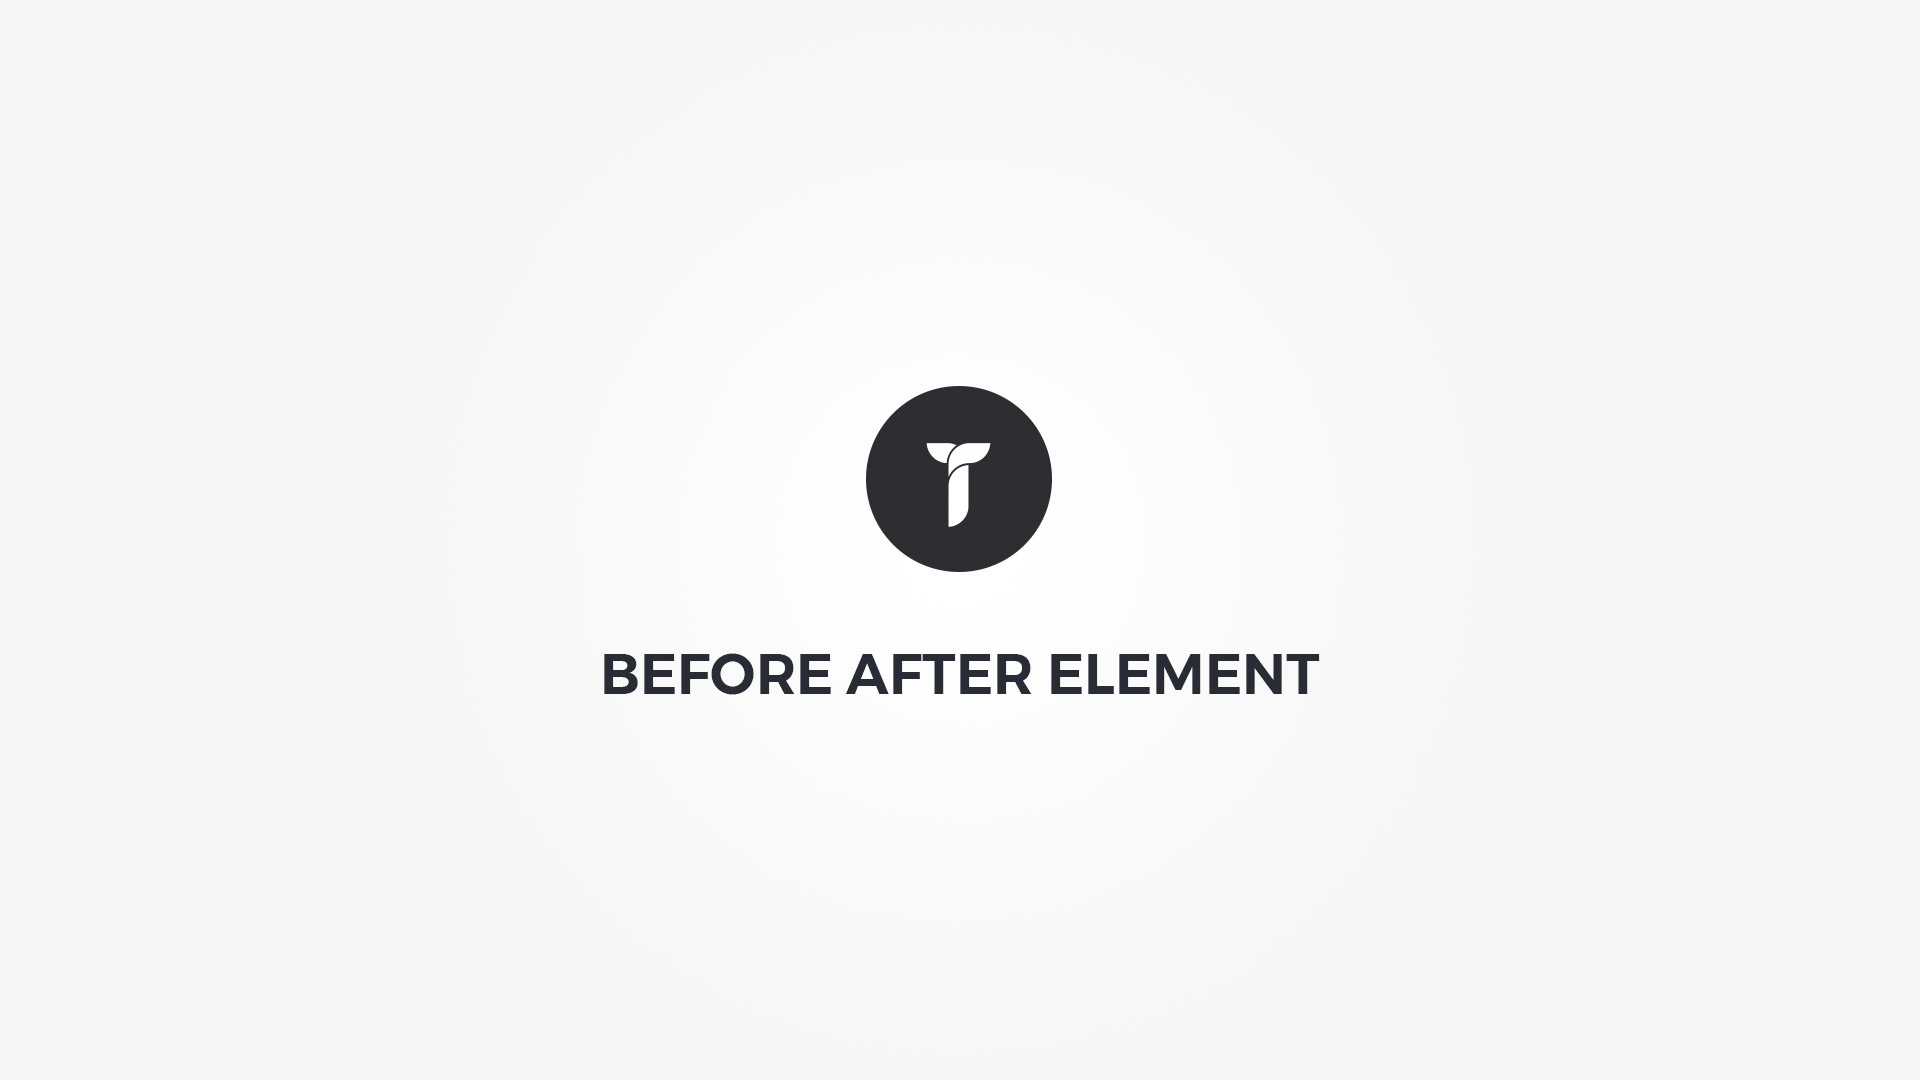 Creatus WordPress Theme Before After Element